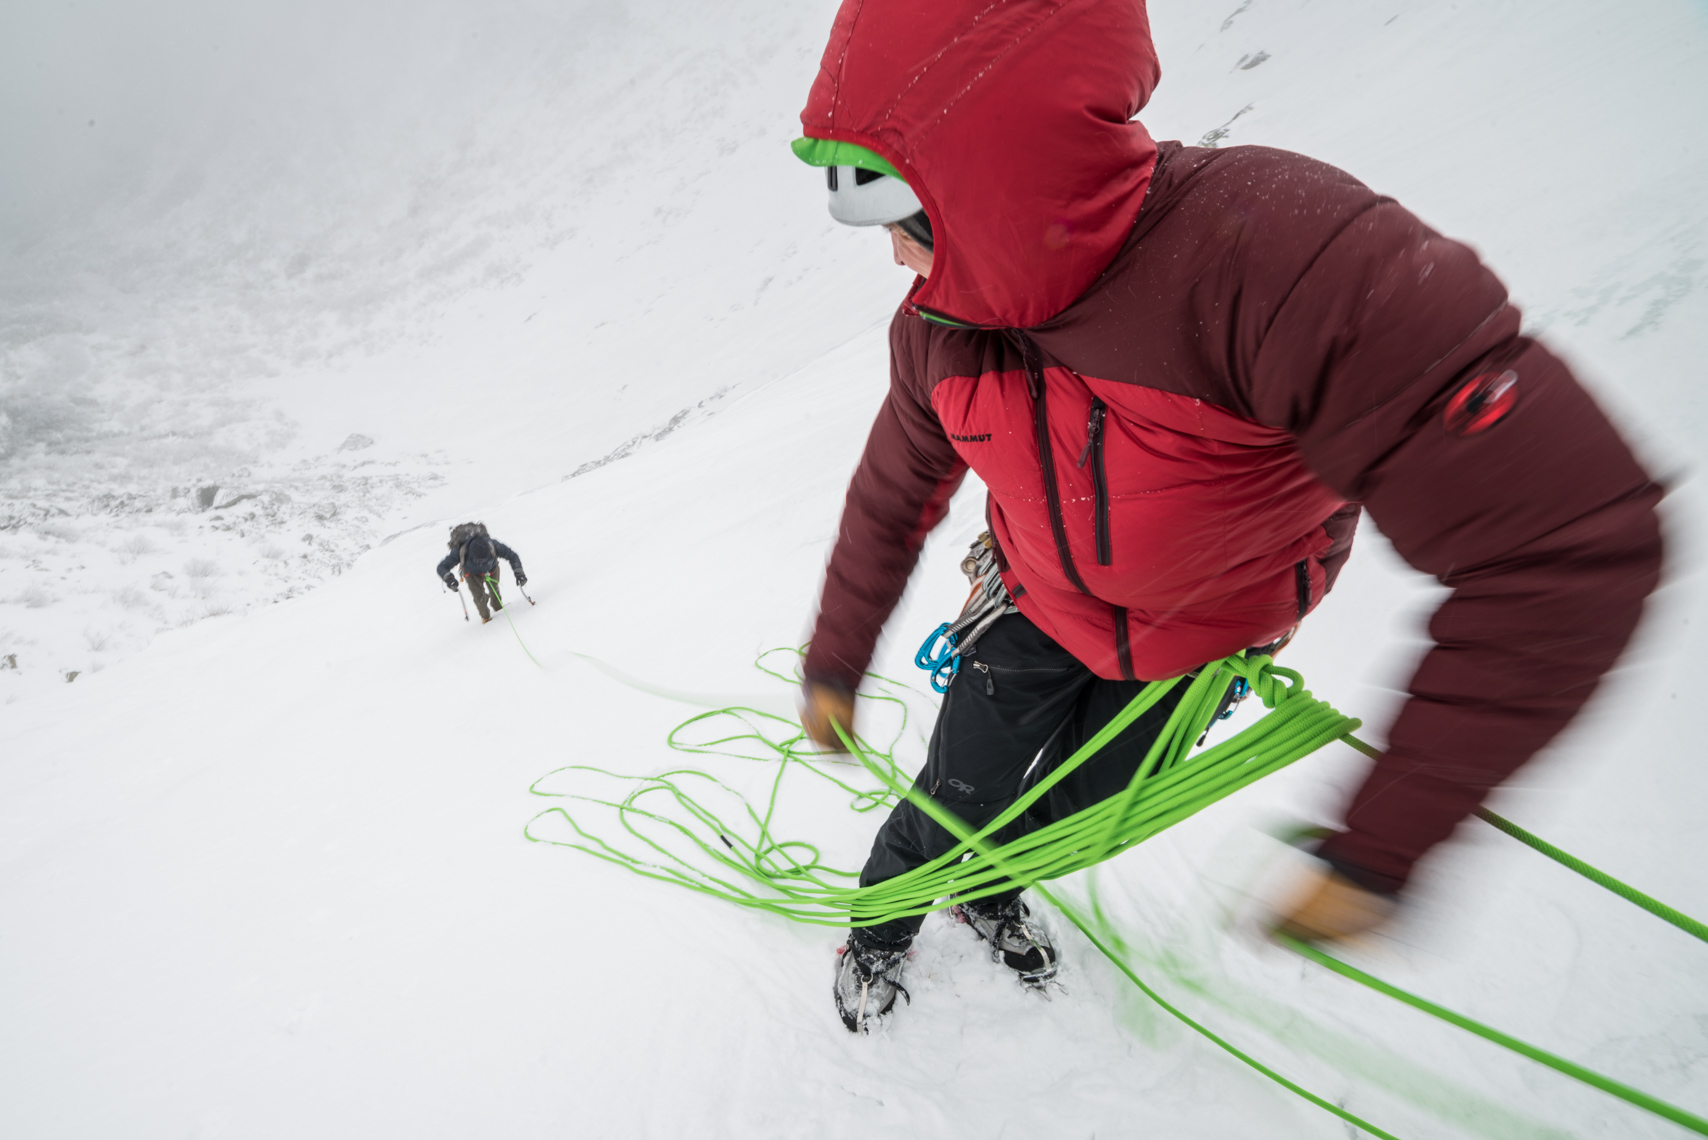 Belaying in winter